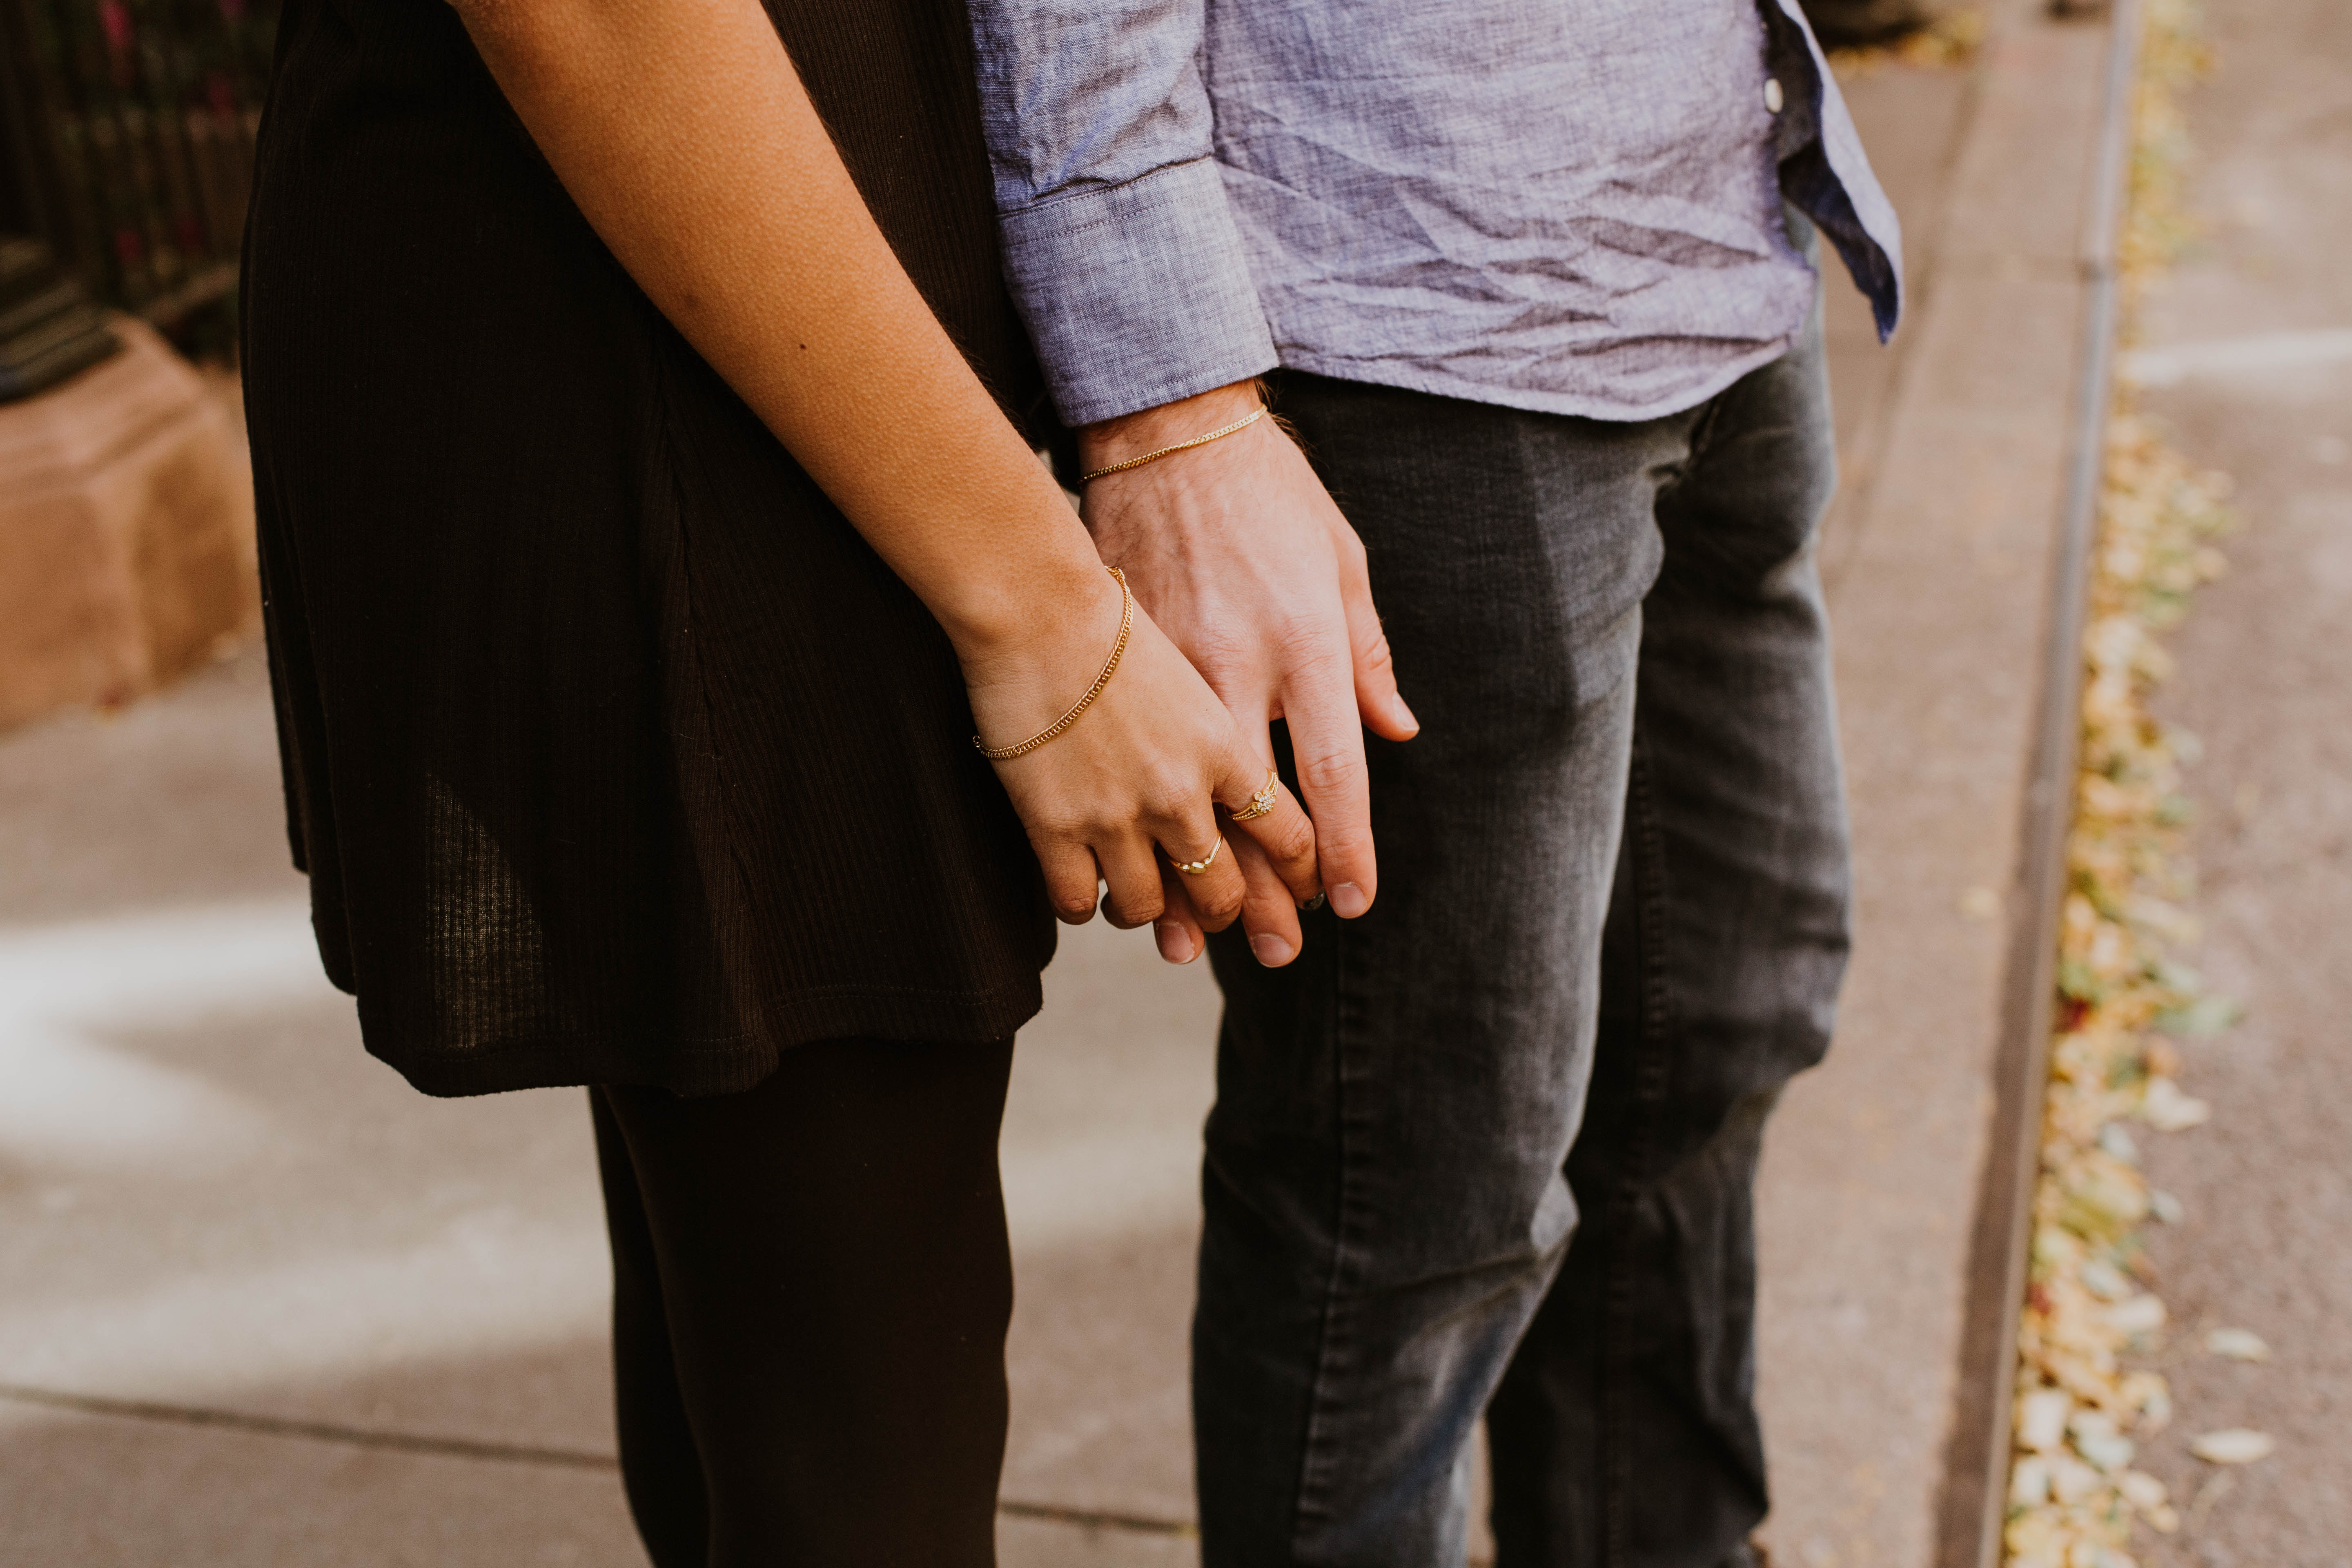 Think Your Spouse is Cheating? Here's What to Do